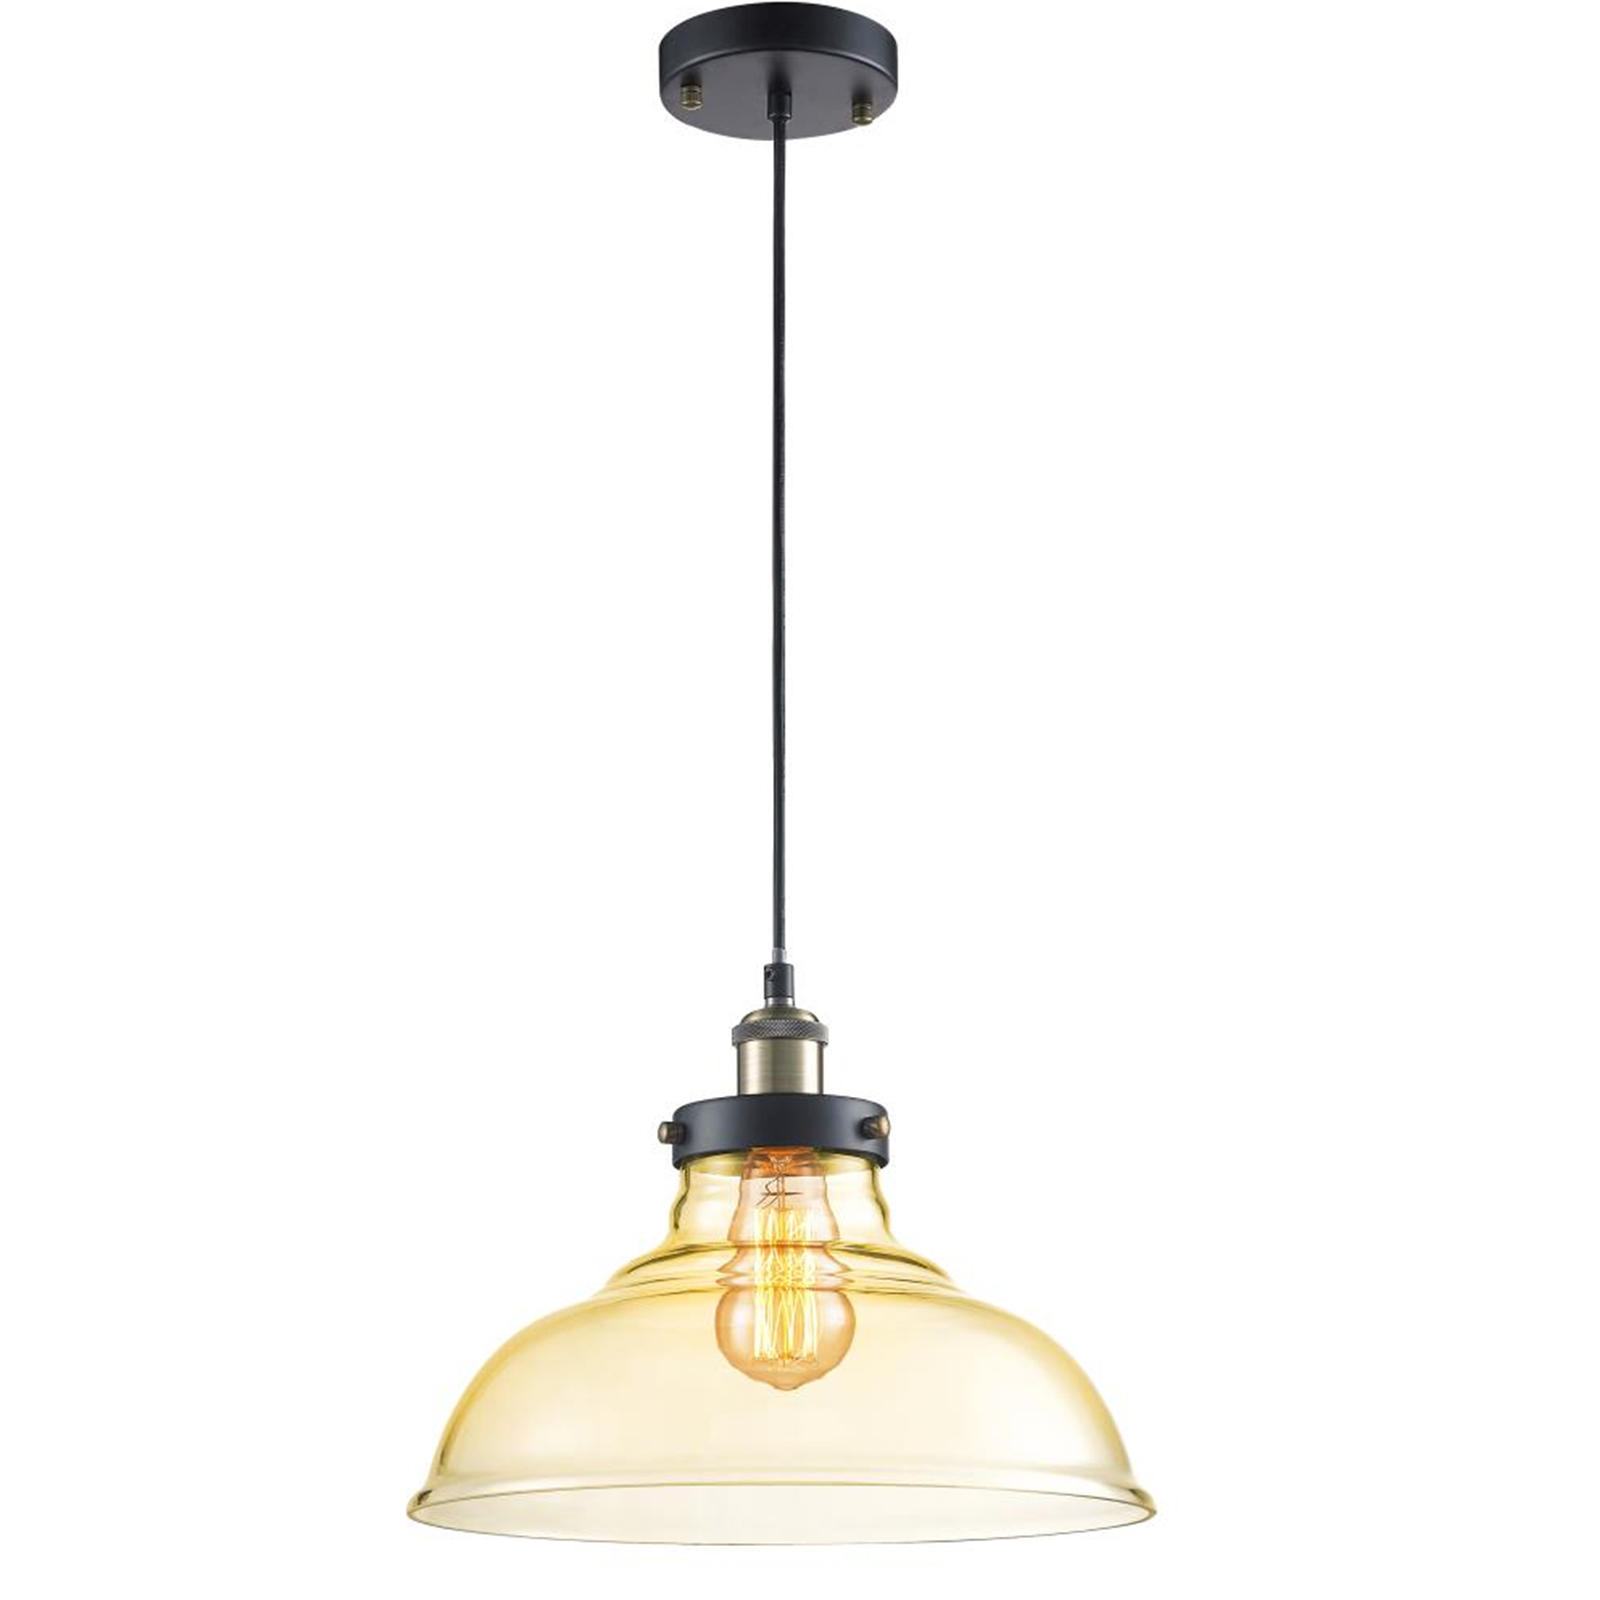 Vintage style lighting fixtures Vintage Industrial Serene Life Pendant Light Hanging Lamp Light Fixture Vintagestyle Glass Lighting Accent Walmartcom Walmart Serene Life Pendant Light Hanging Lamp Light Fixture Vintage